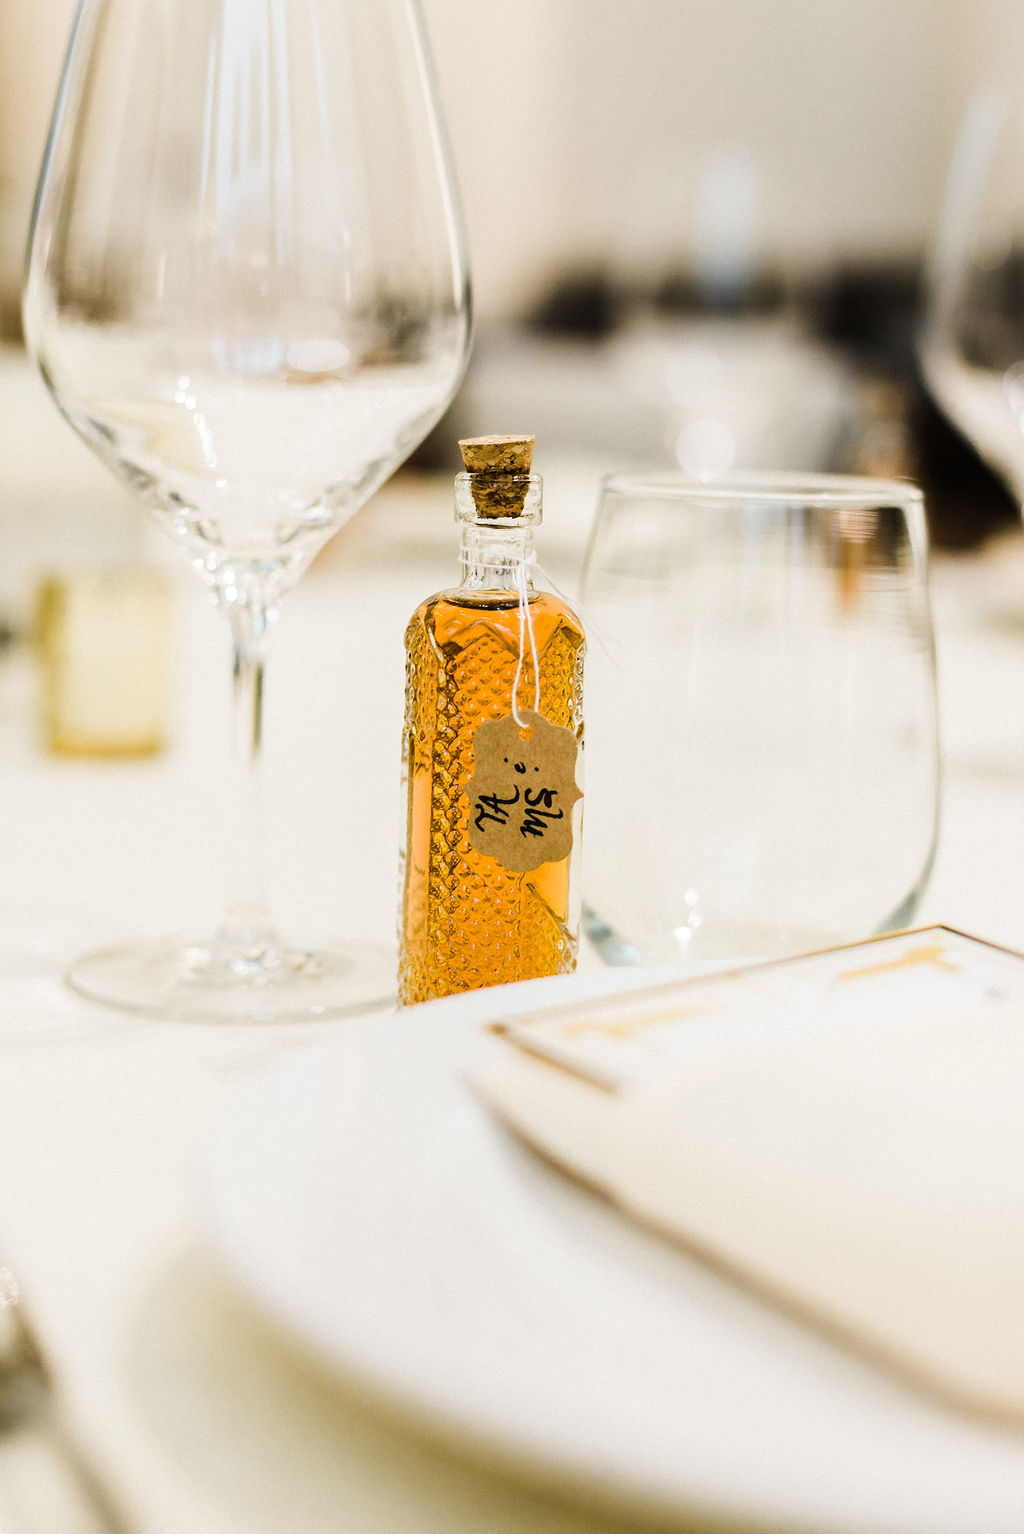 Small bottles of liquor as favors for the guest at Melanie & Tyler's Great Gatsby themed wedding at The Goodwin Hotel - Pearl Weddings & Events